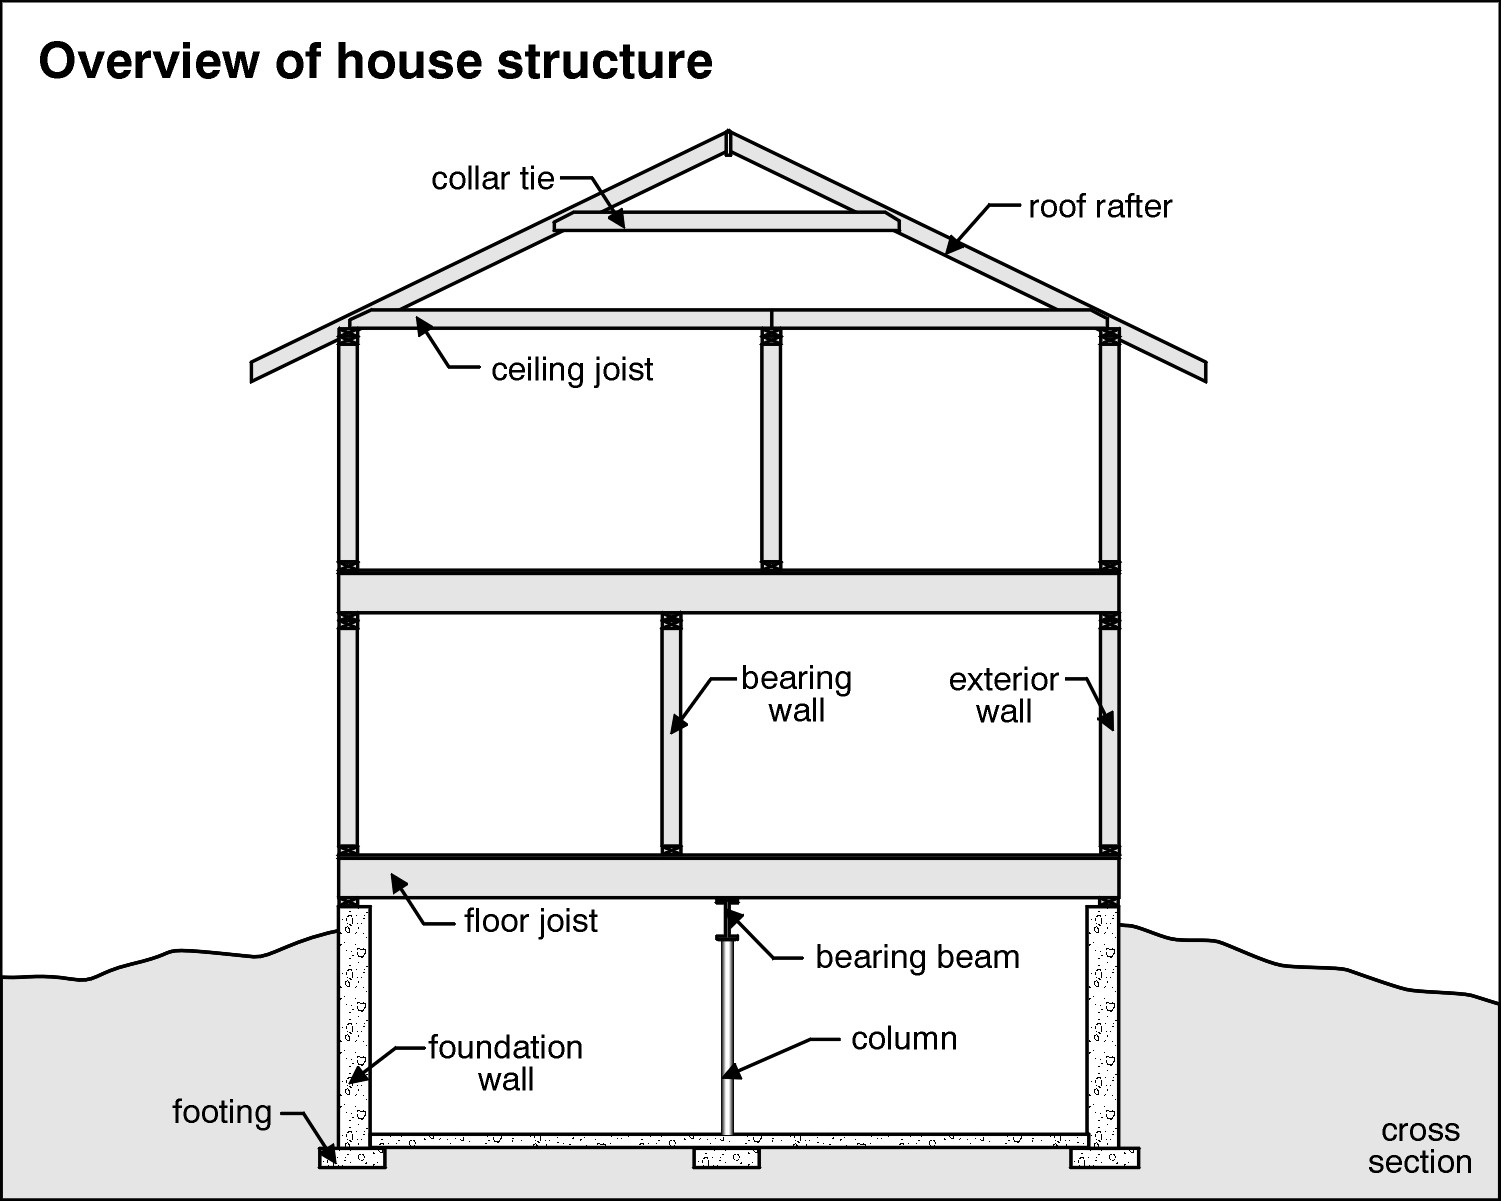 Structural Roof Systems : Structural systems a pro home inspection austin texas